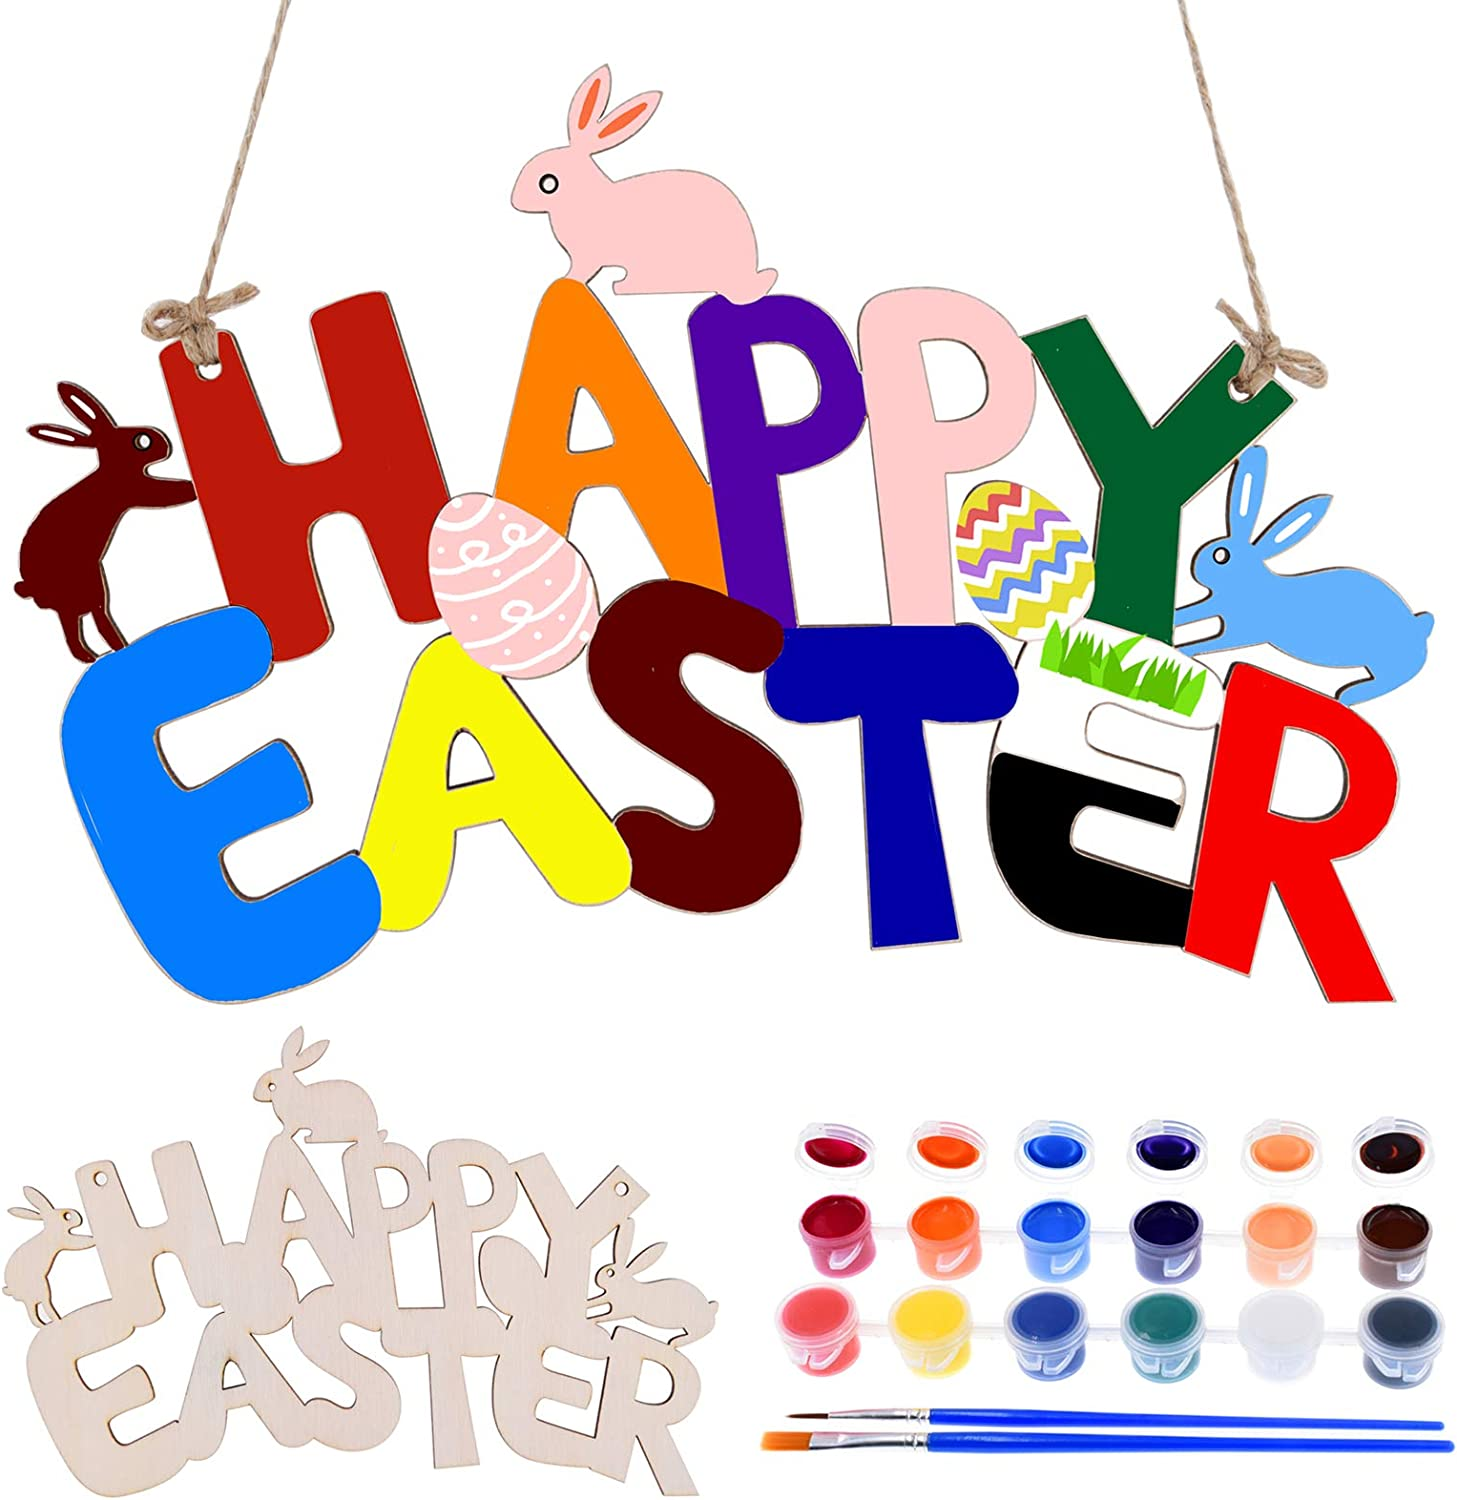 EXRIZU Easter Crafts Paint Large-scale sale Unfinished Natural Great interest Wood and Arts Craf